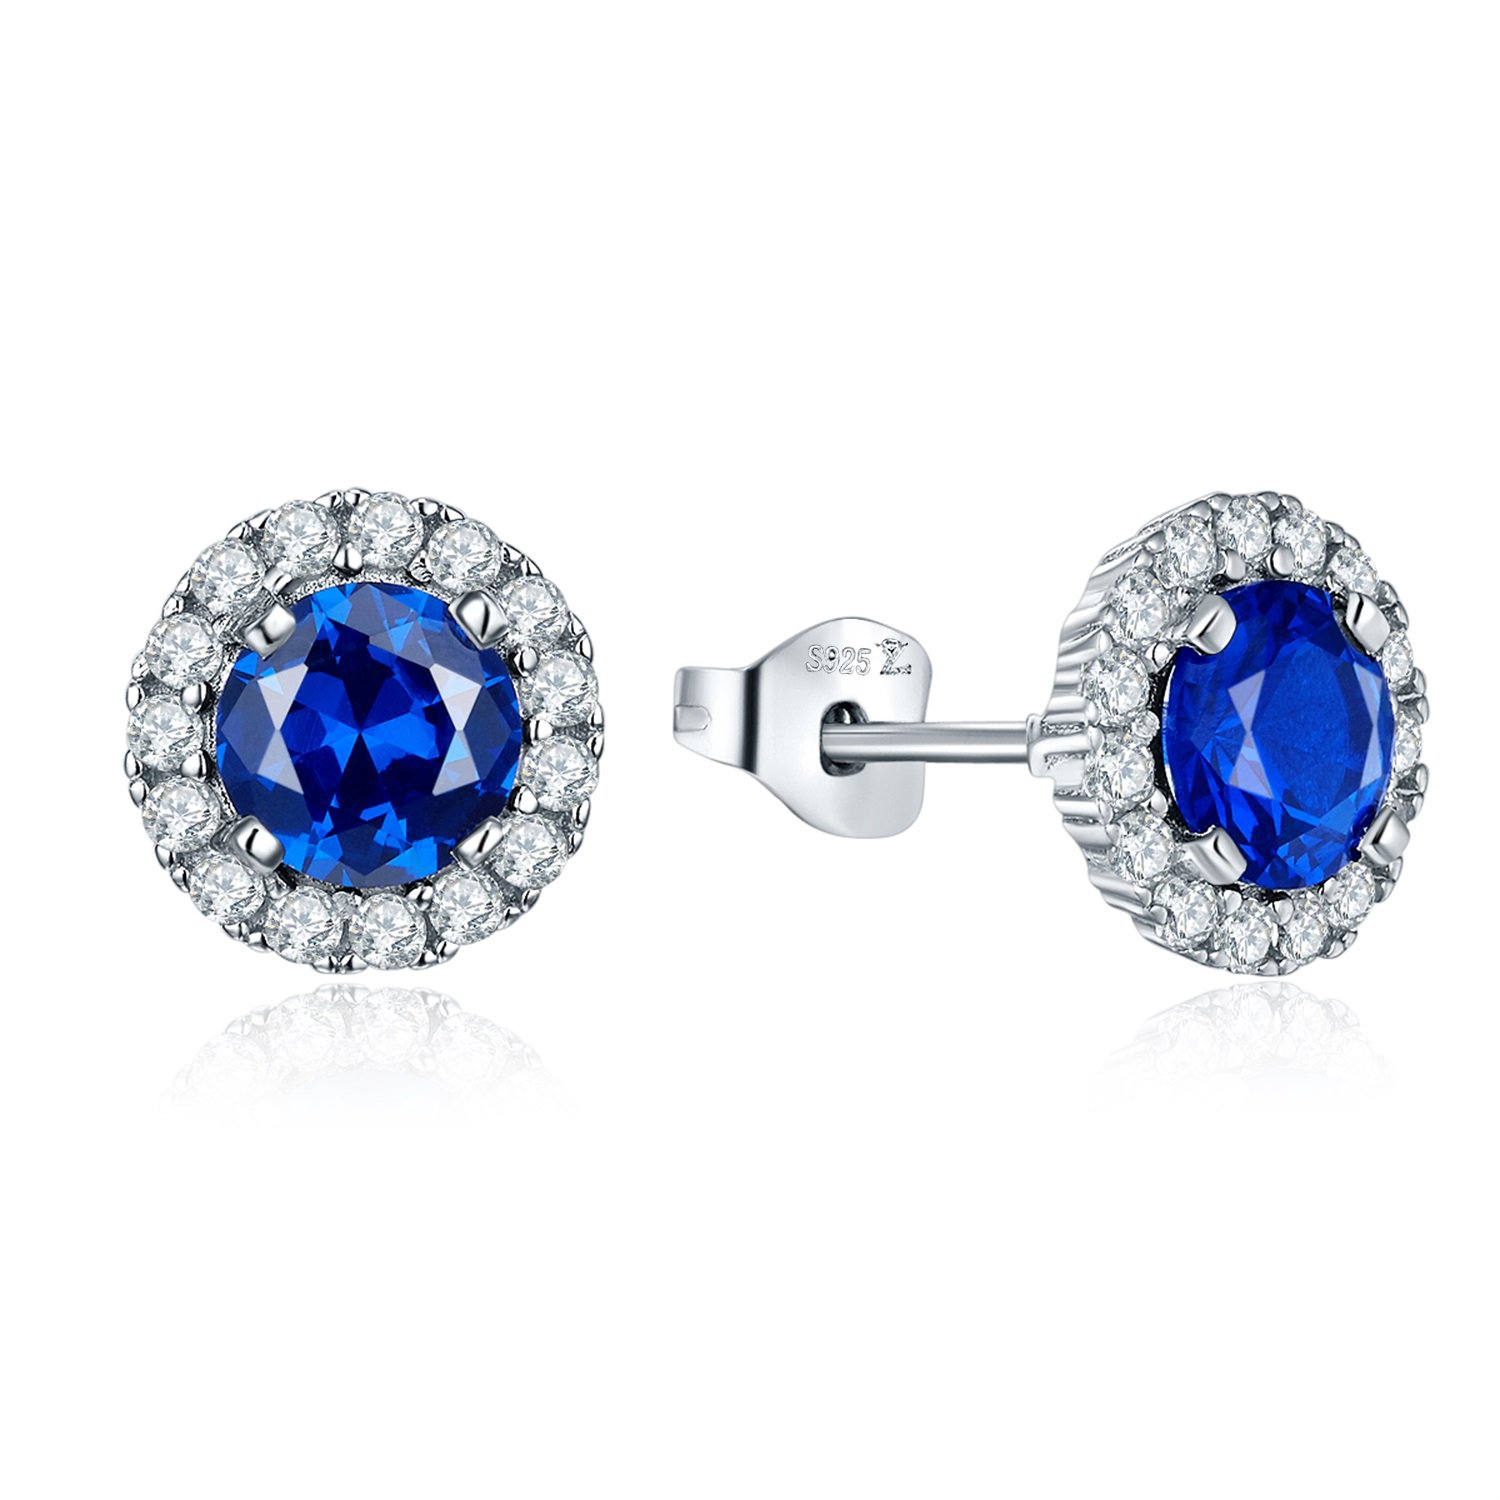 JO WISDOM 925 Sterling Silver Round Gemstone and Blue Created Sapphire Halo Stud Earrings by JO WISDOM (Image #1)